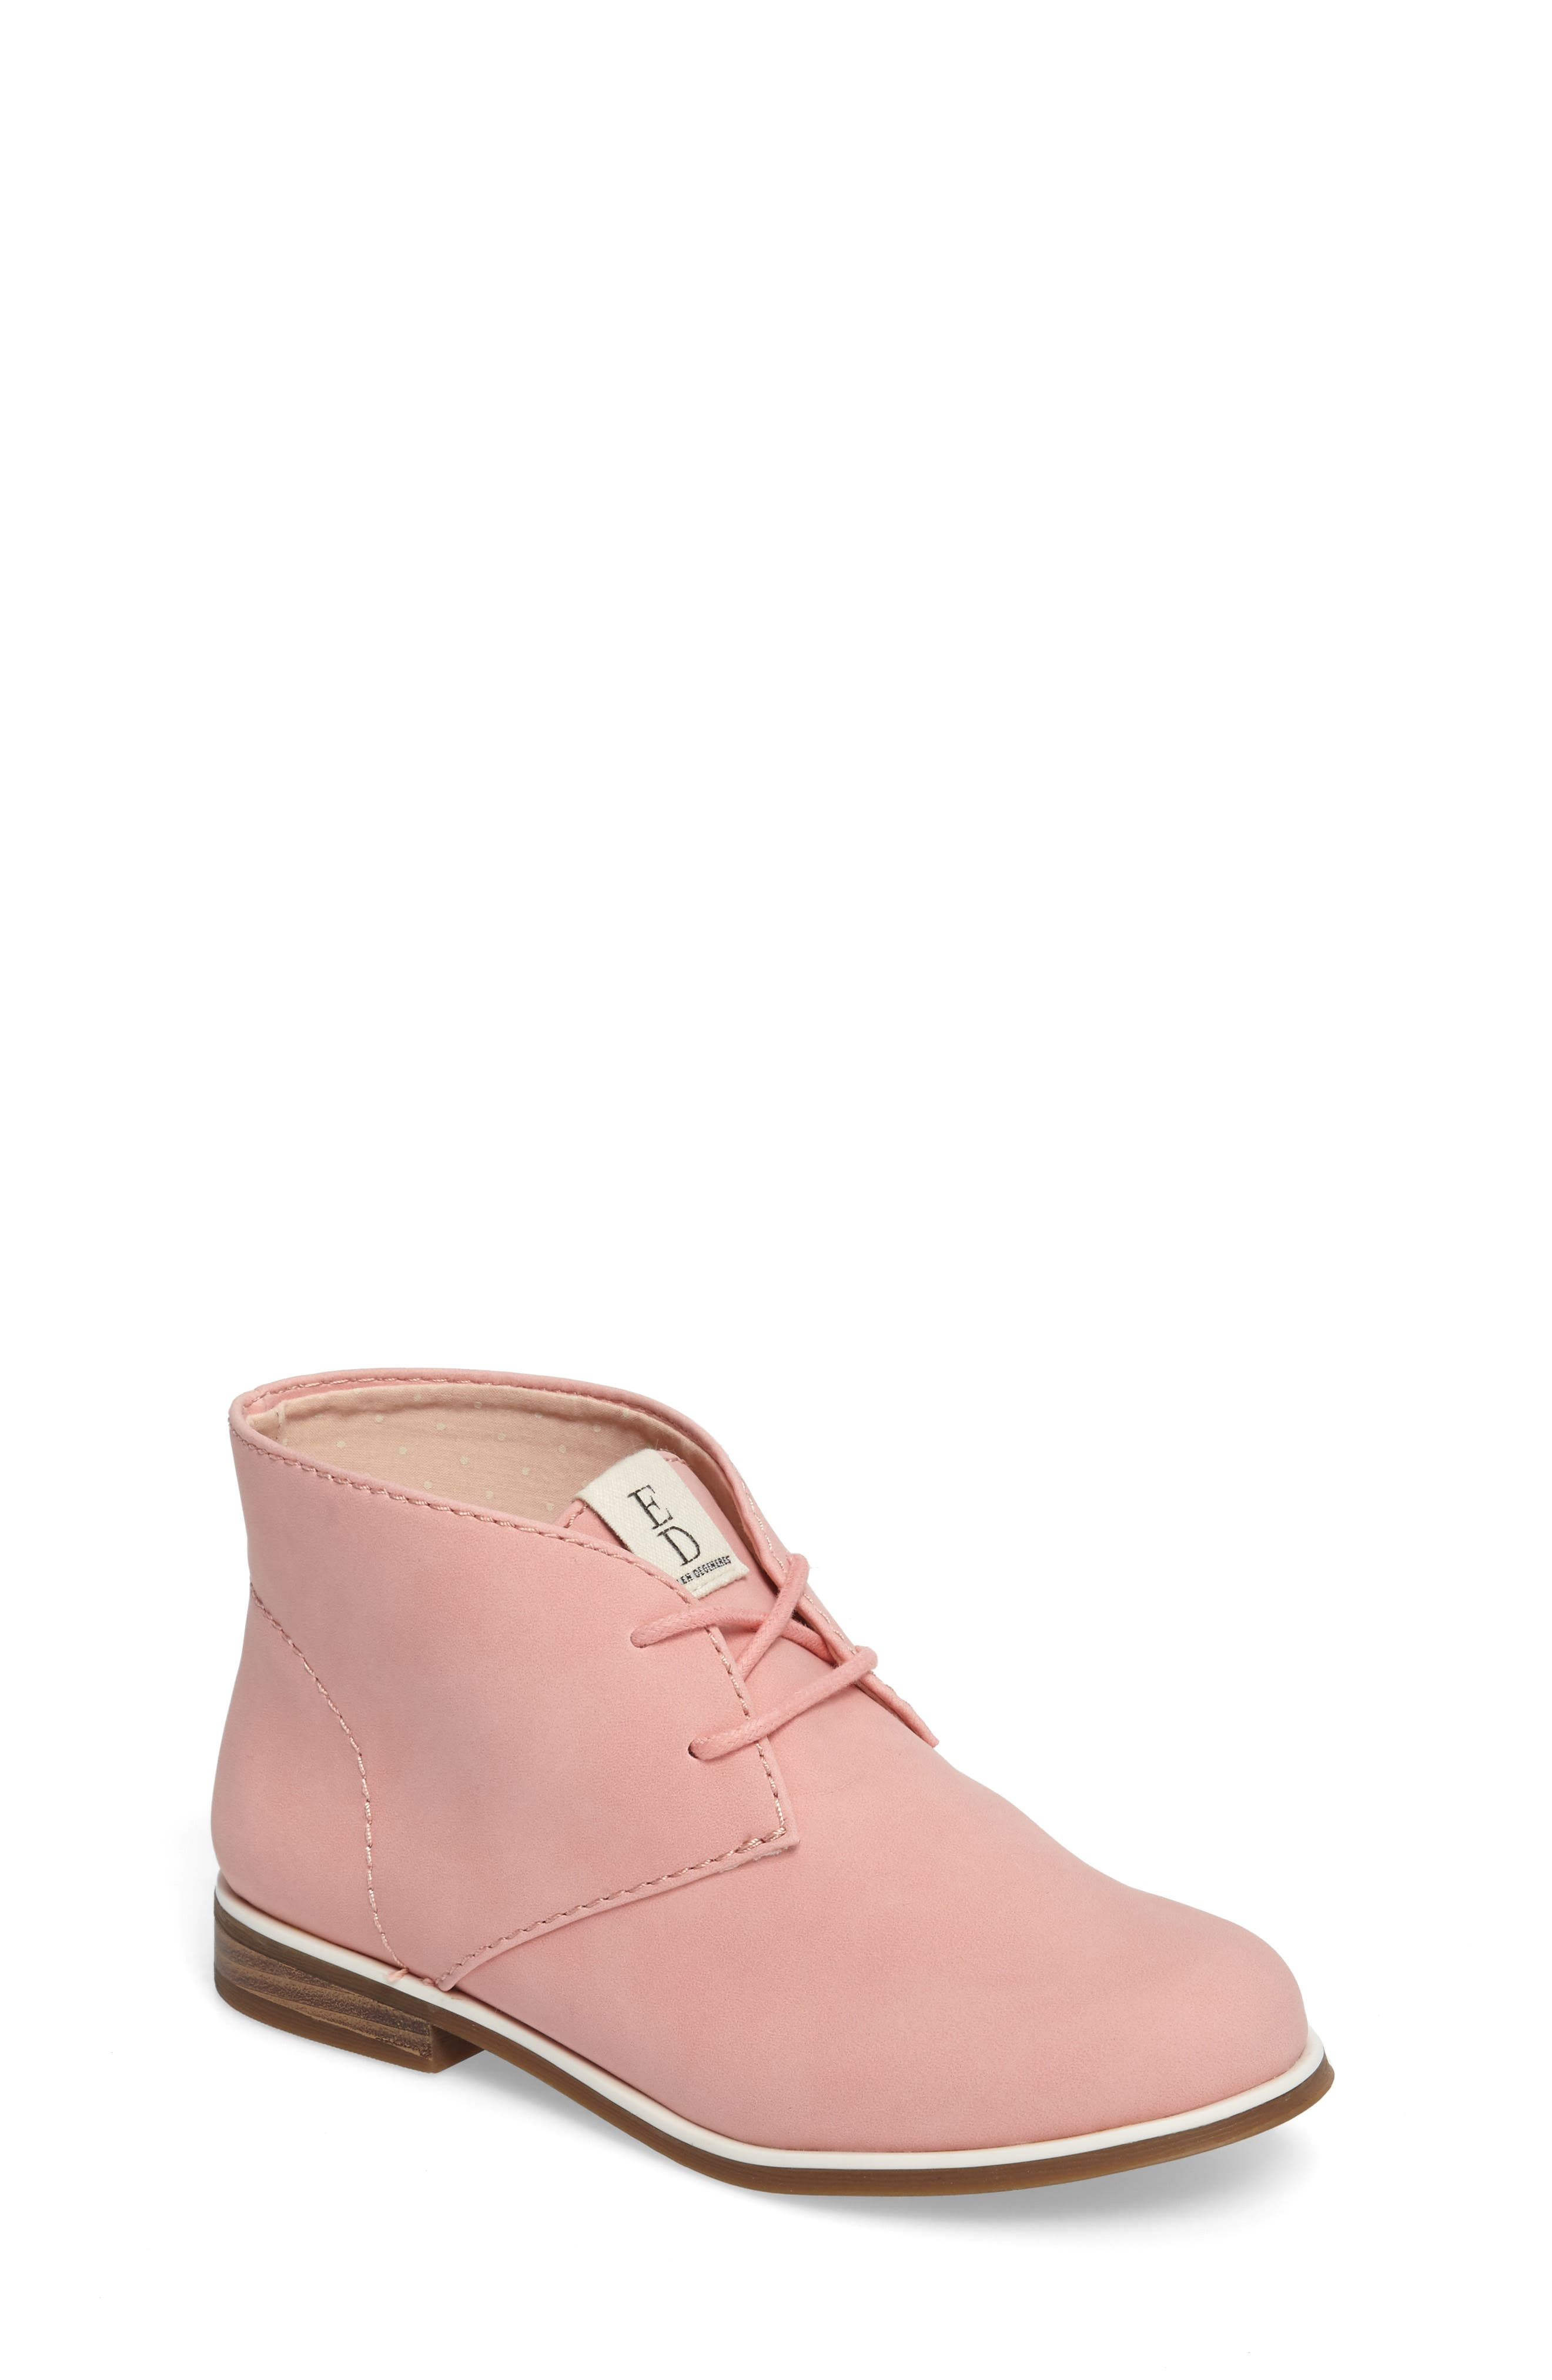 Korie Chukka Bootie,                             Main thumbnail 1, color,                             Poppy Pink Suede